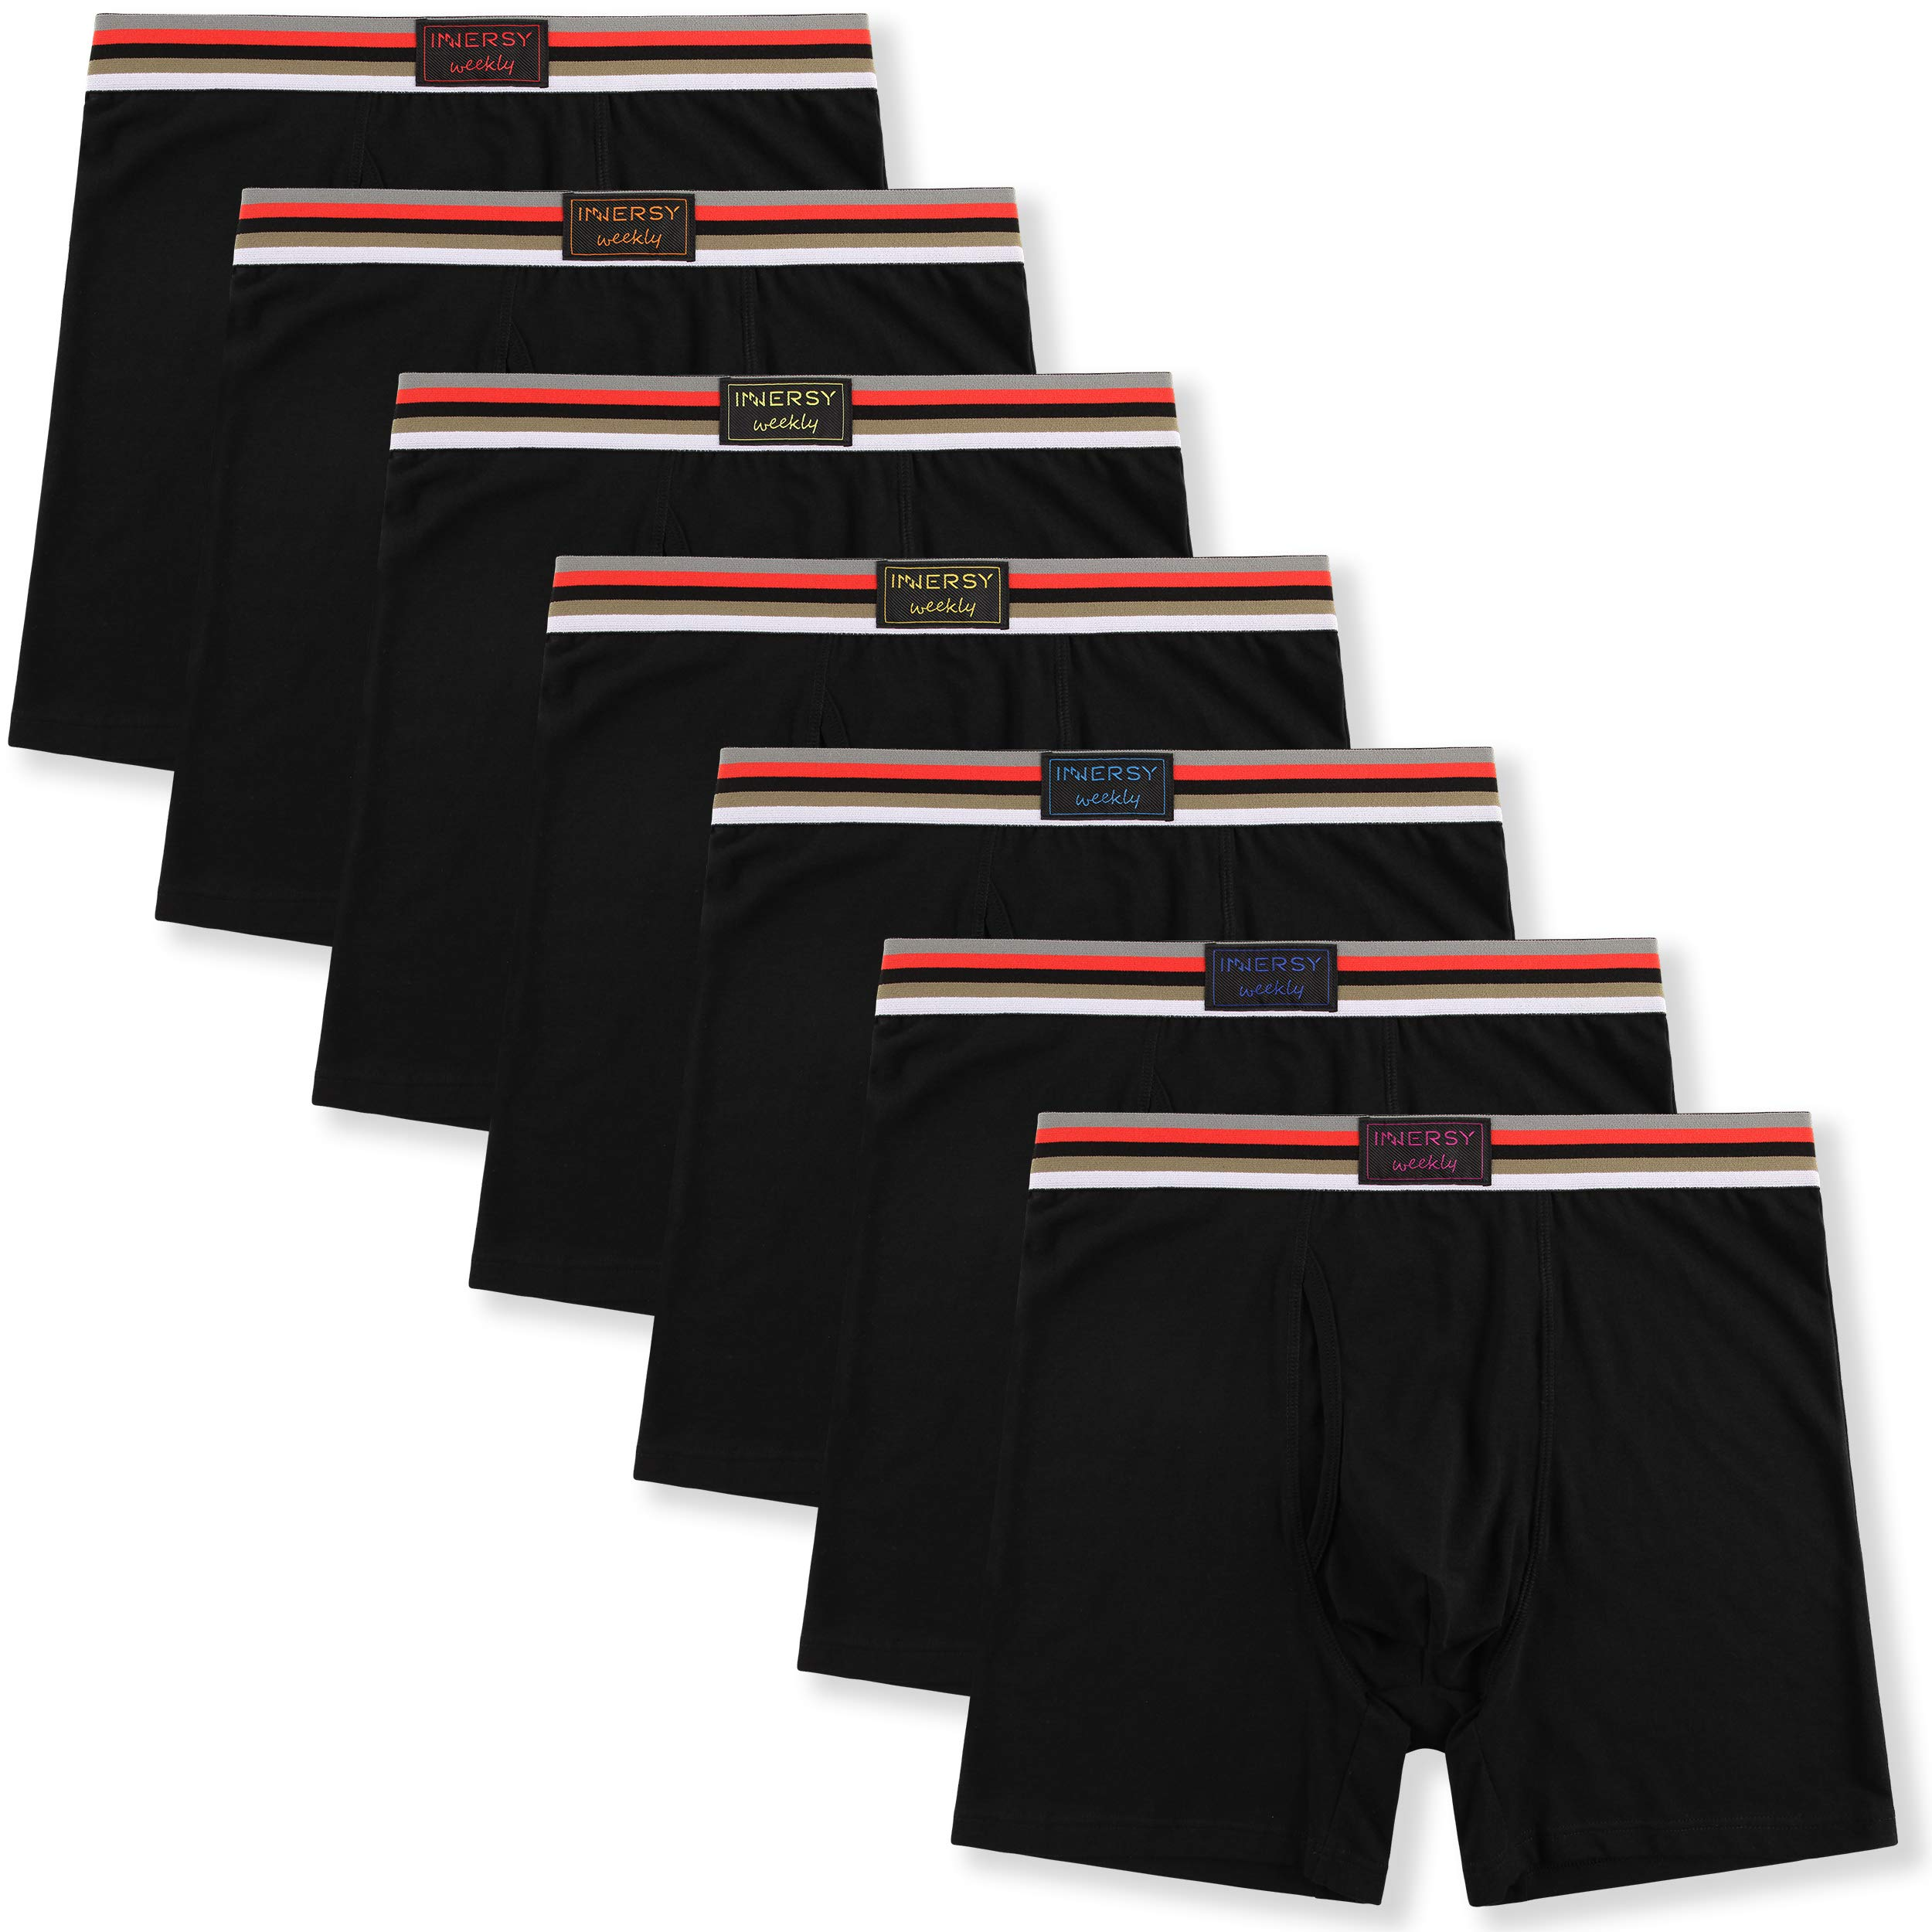 Innersy Men's Cotton Boxer Briefs 7 Pack Rainbow Colorful Stretchy Cotton Underwear for a Week (Medium, 7 Black with Fly)